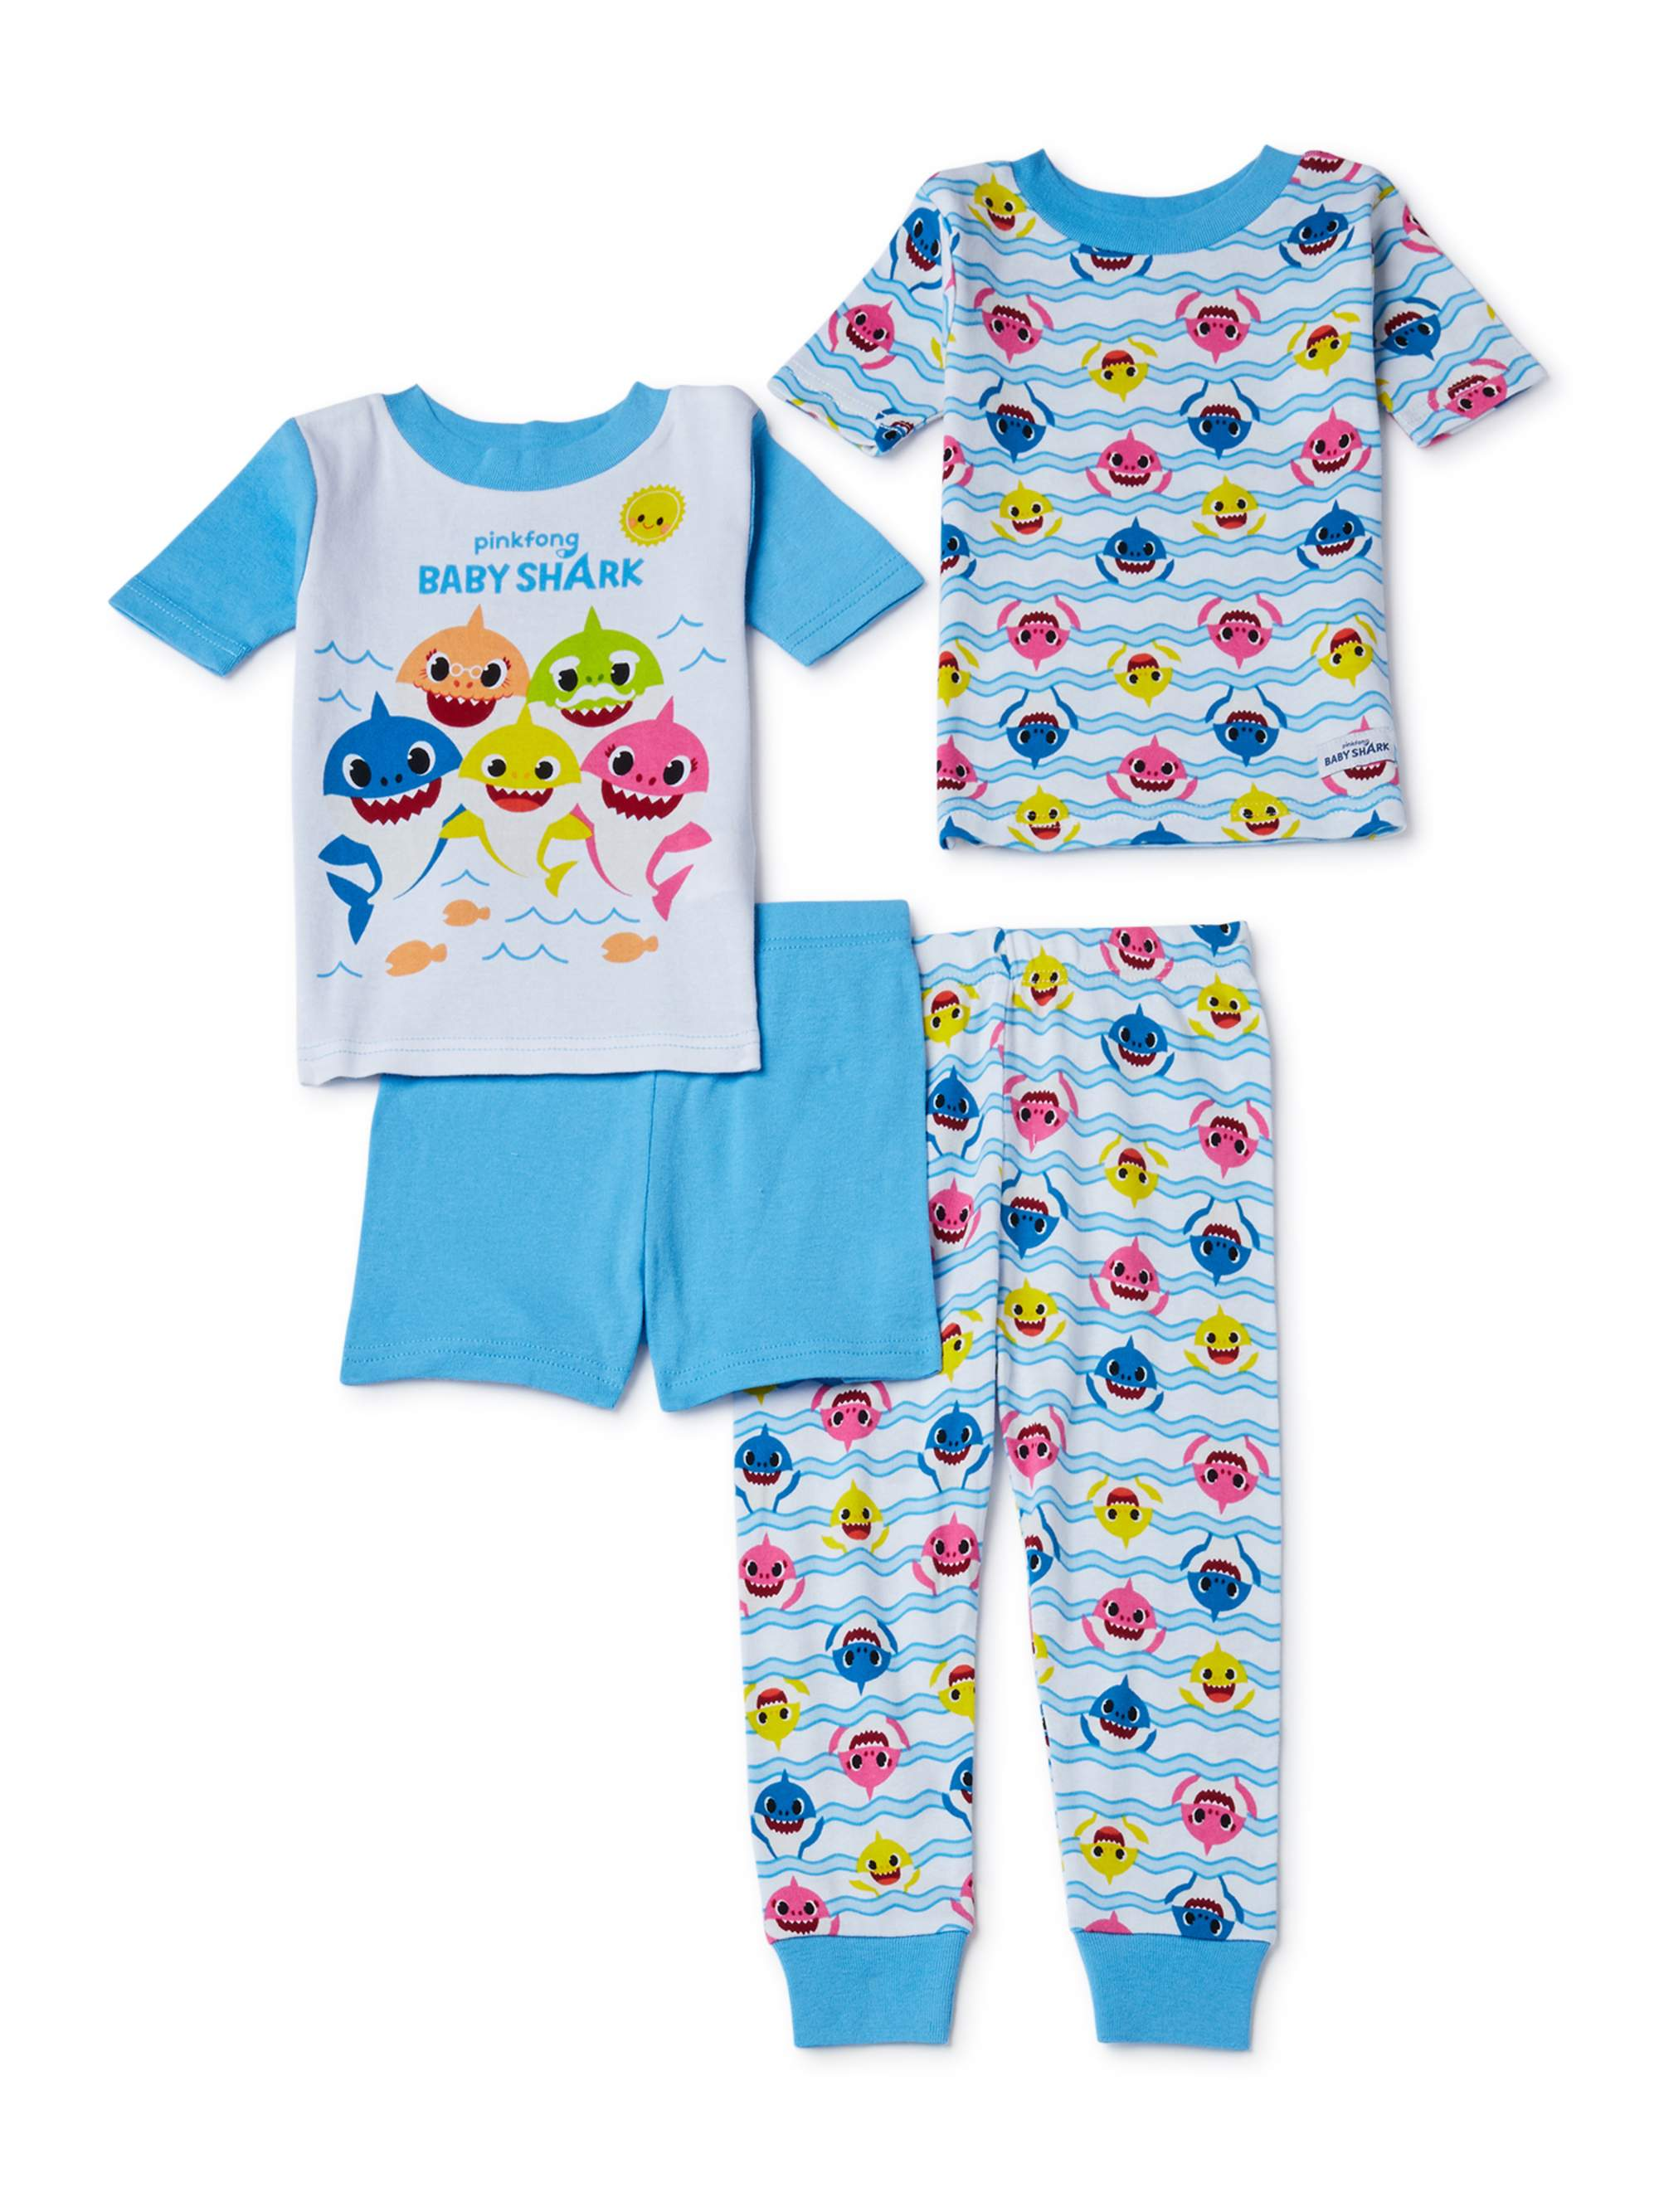 Long Sleeve Cotton Rompers for Baby Boys and Girls Fashion USA Hockey Sleepwear